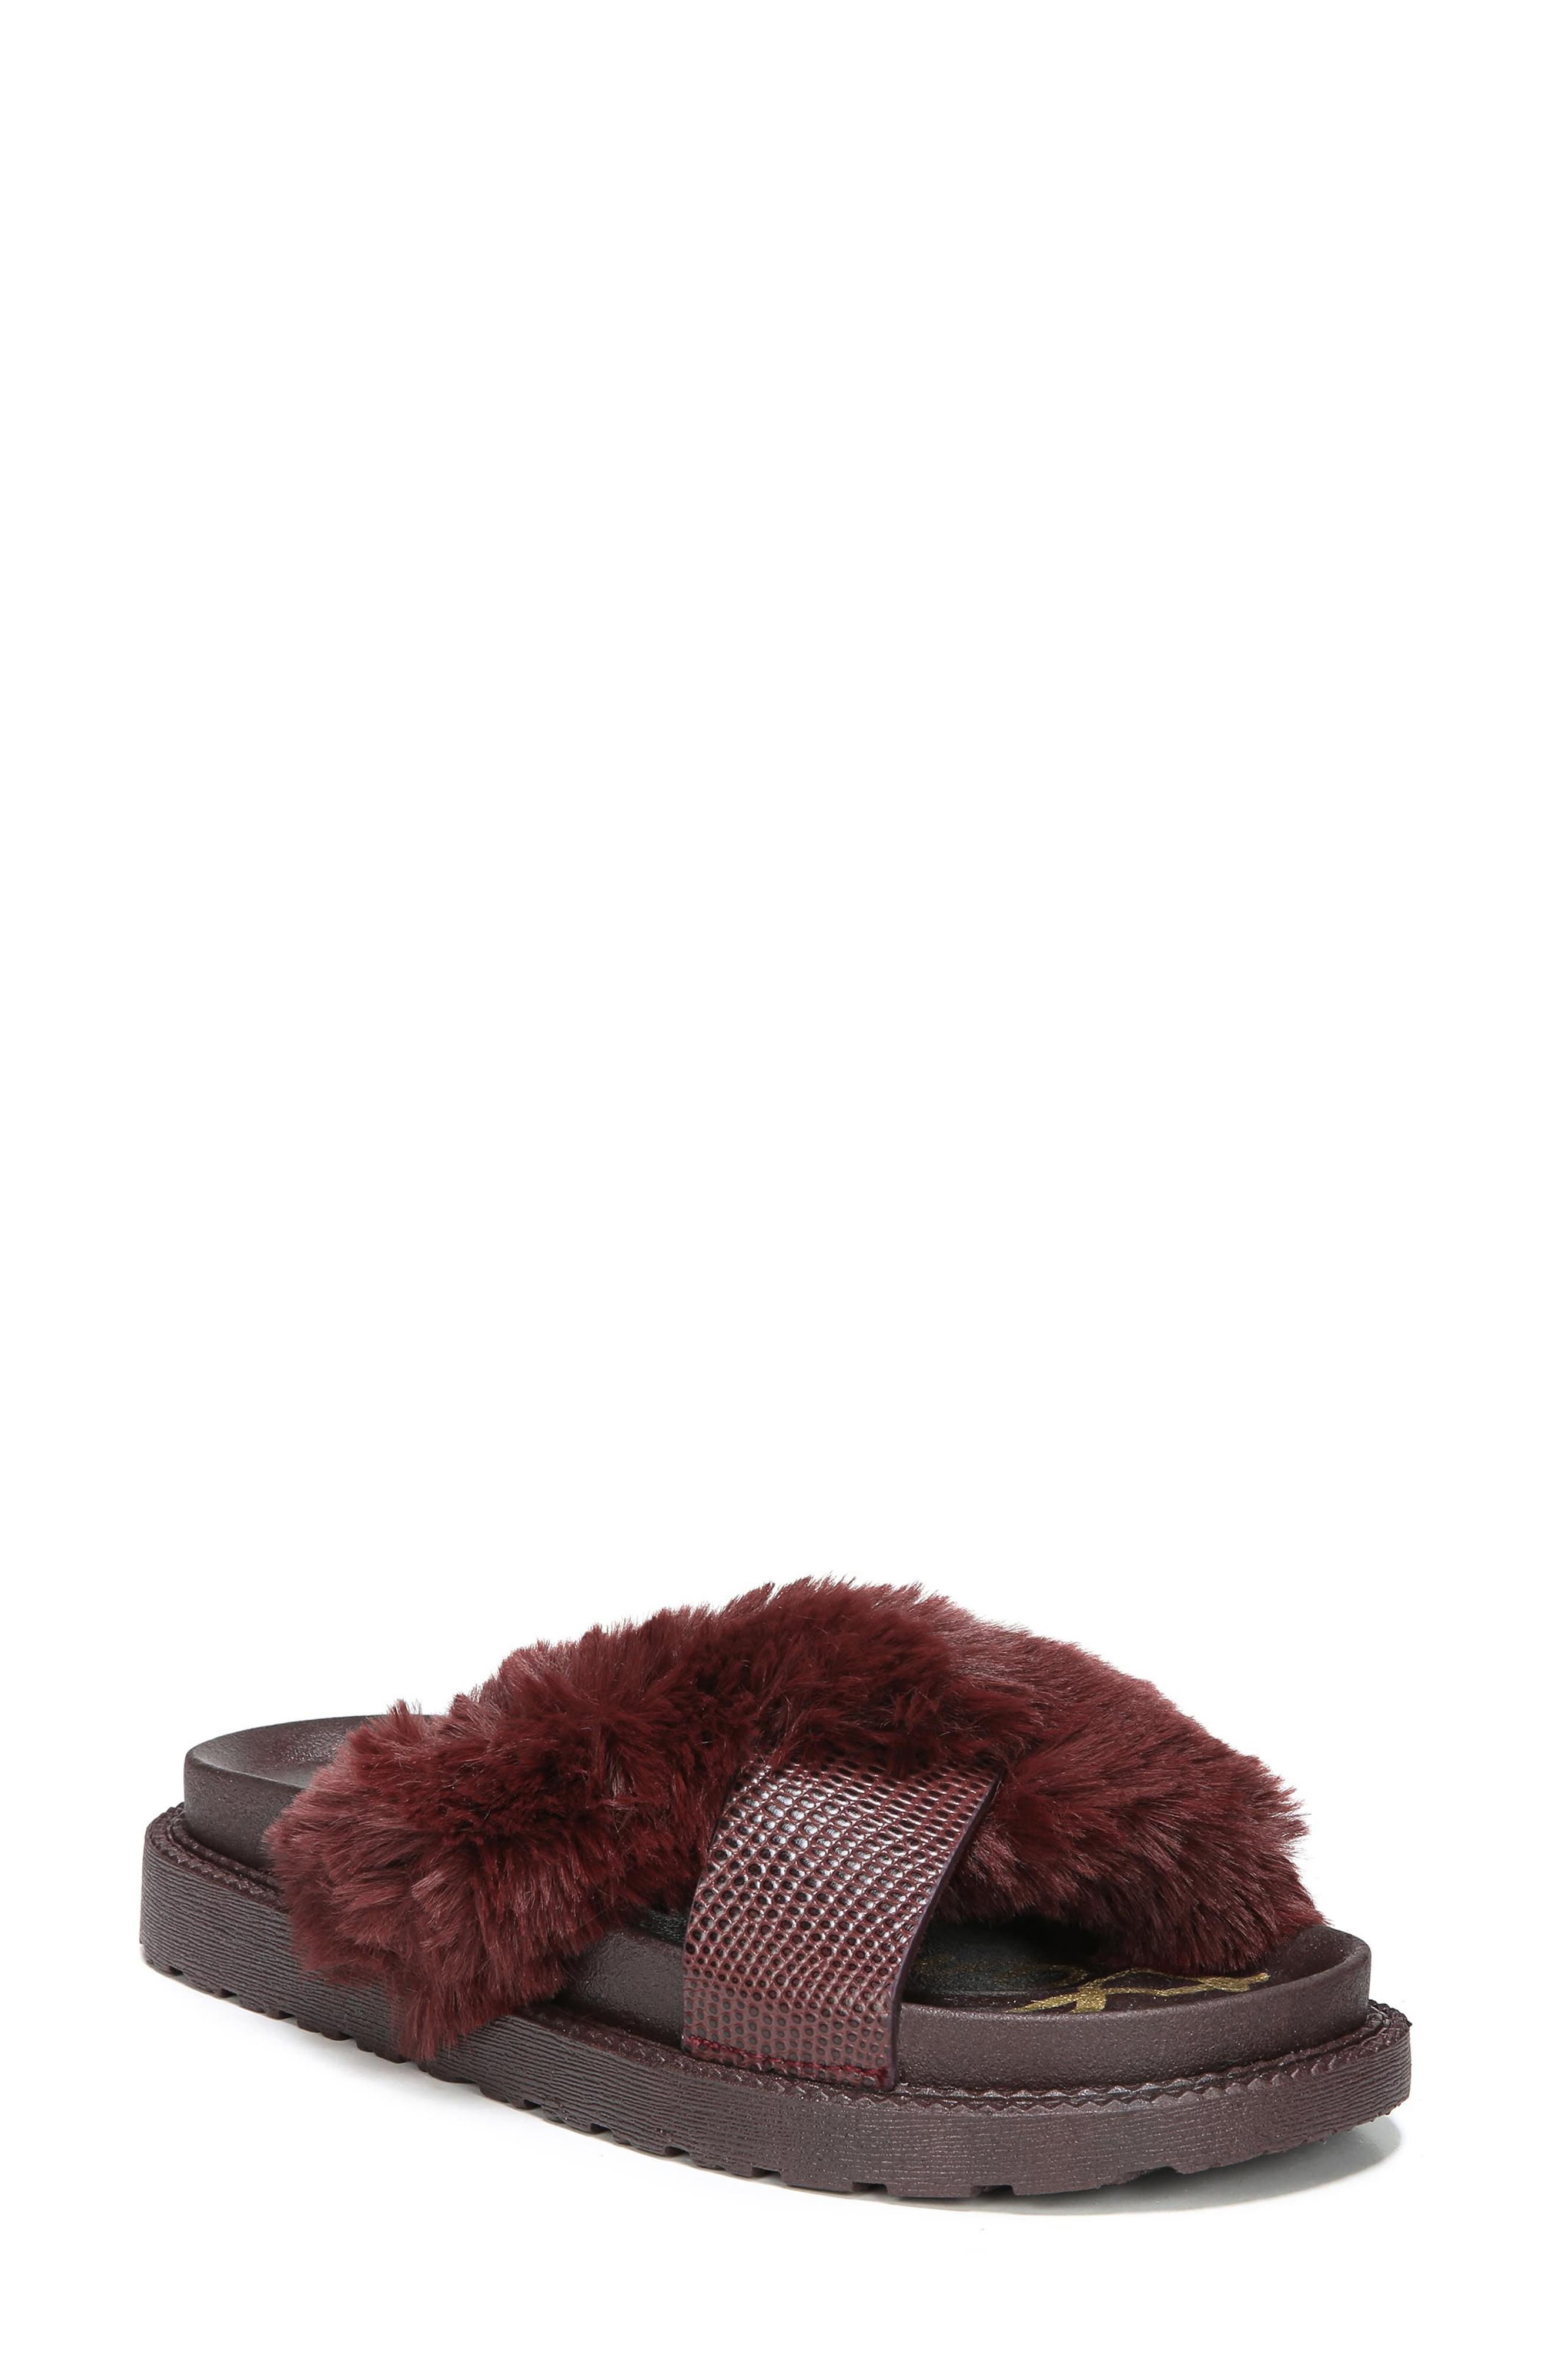 Sam Edelman Bianca Faux Fur Cross Strap Sandal (Women)